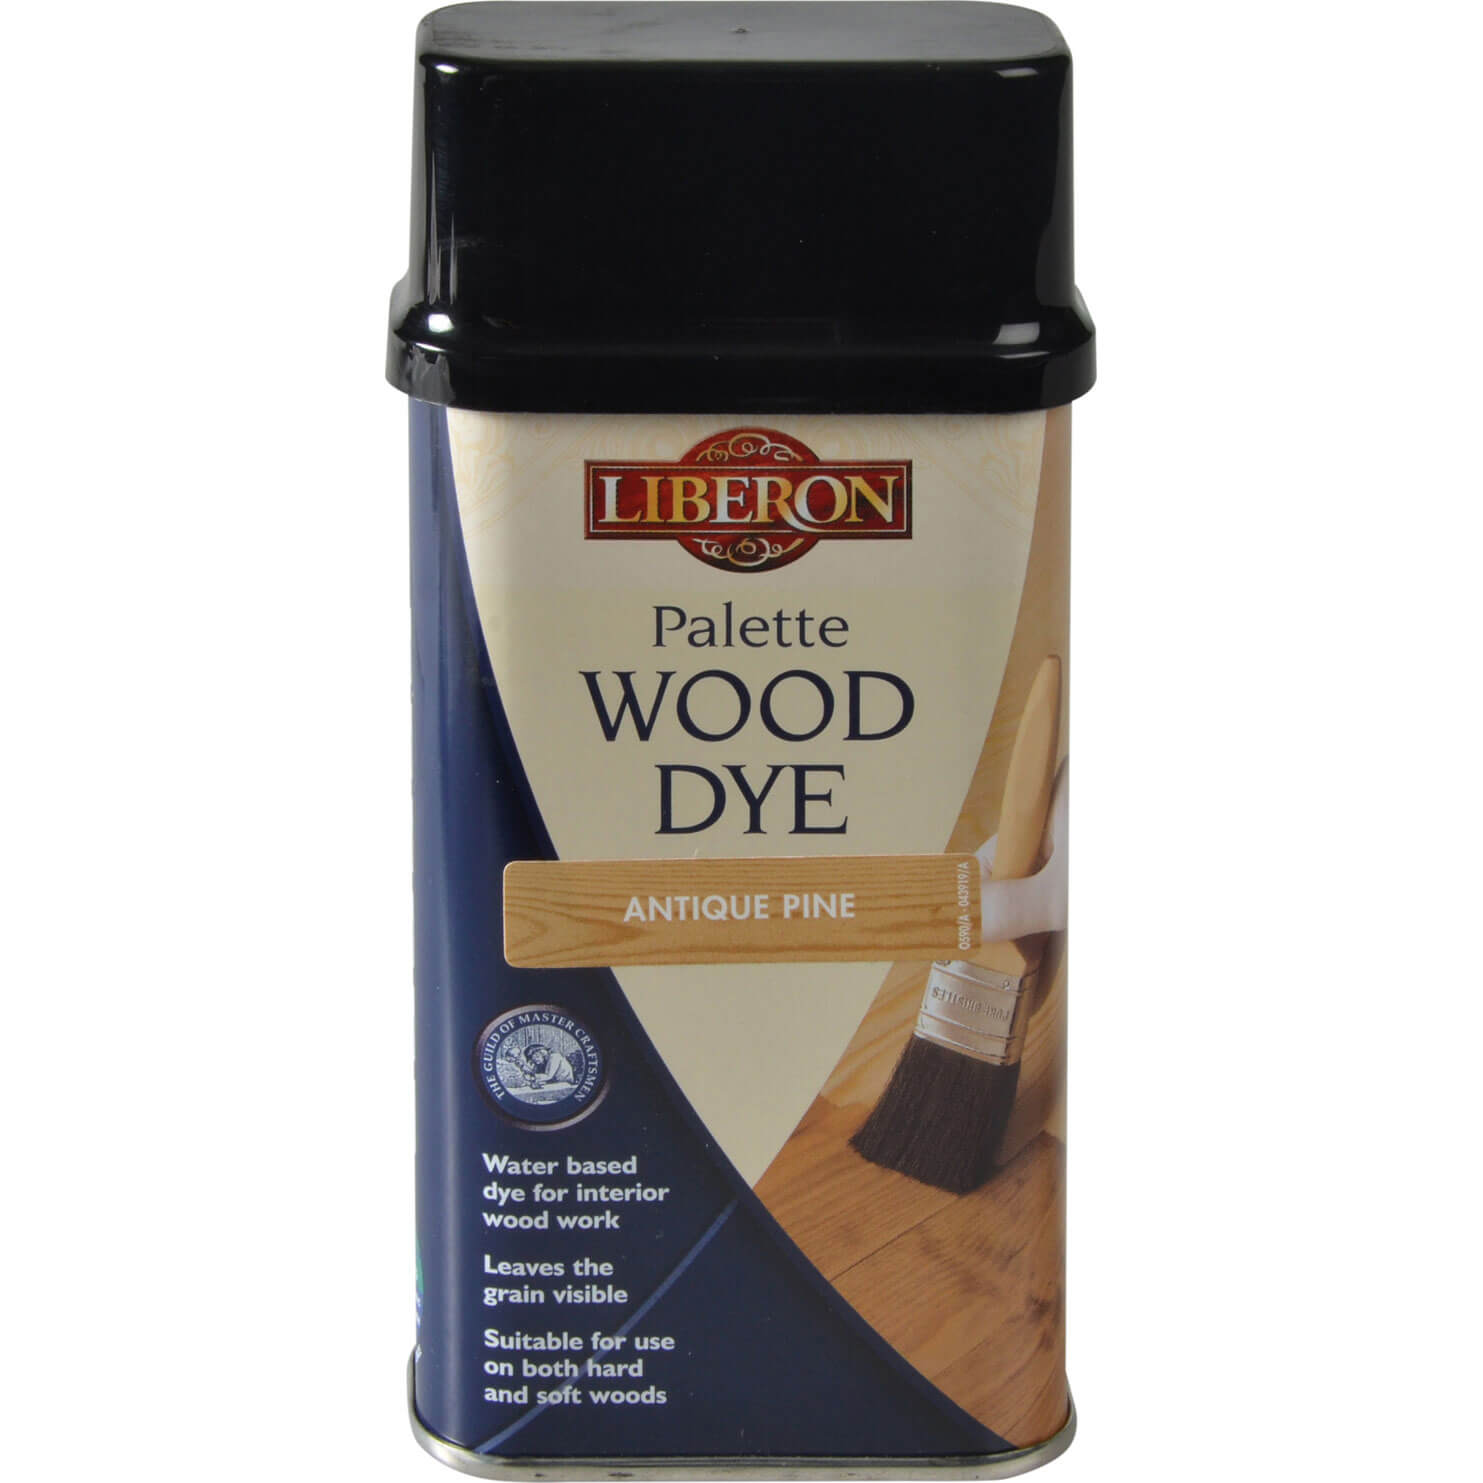 Image of Liberon Palette Wood Dye Antique Pine 250ml